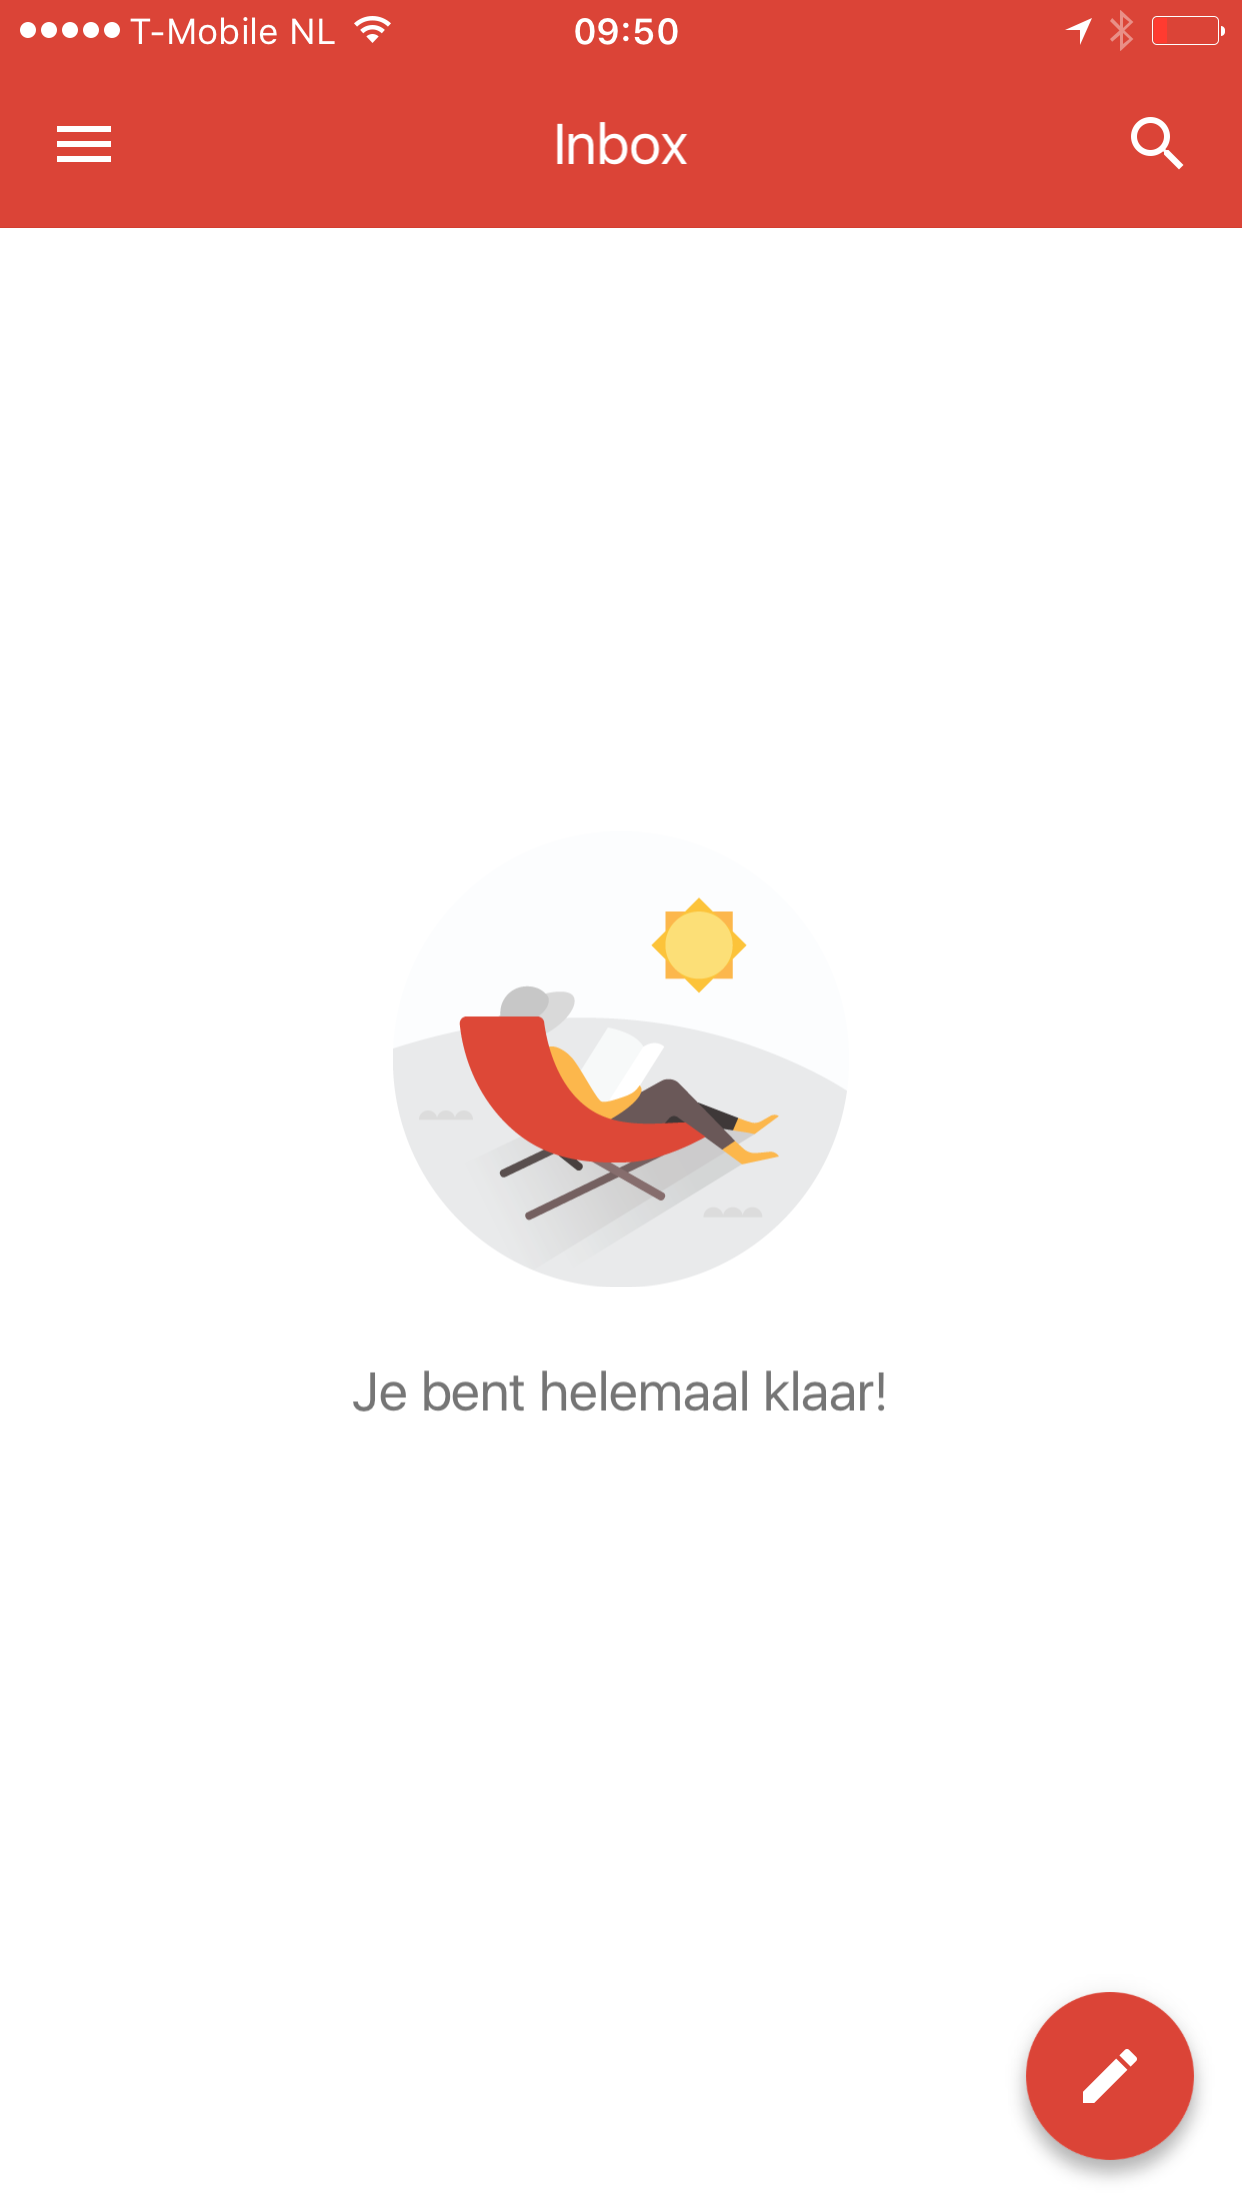 E-mail is de bepalende factor